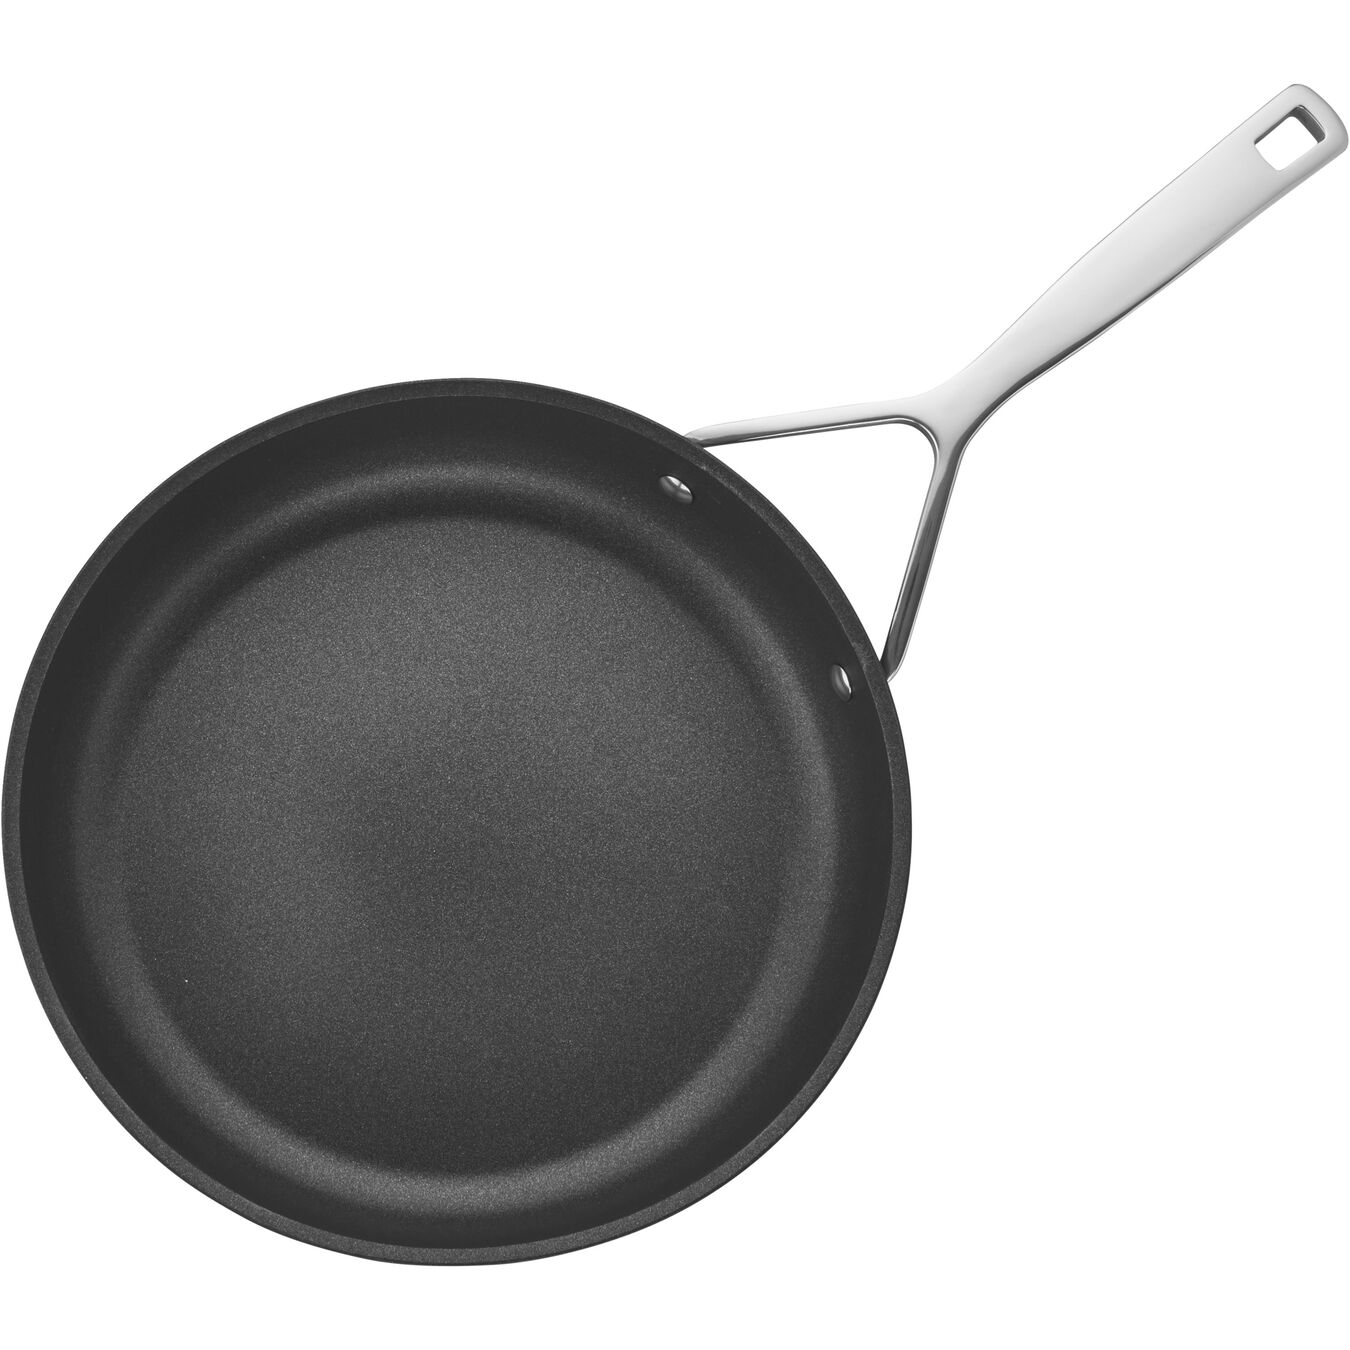 10-inch, Aluminum, Non-stick Frying pan,,large 3